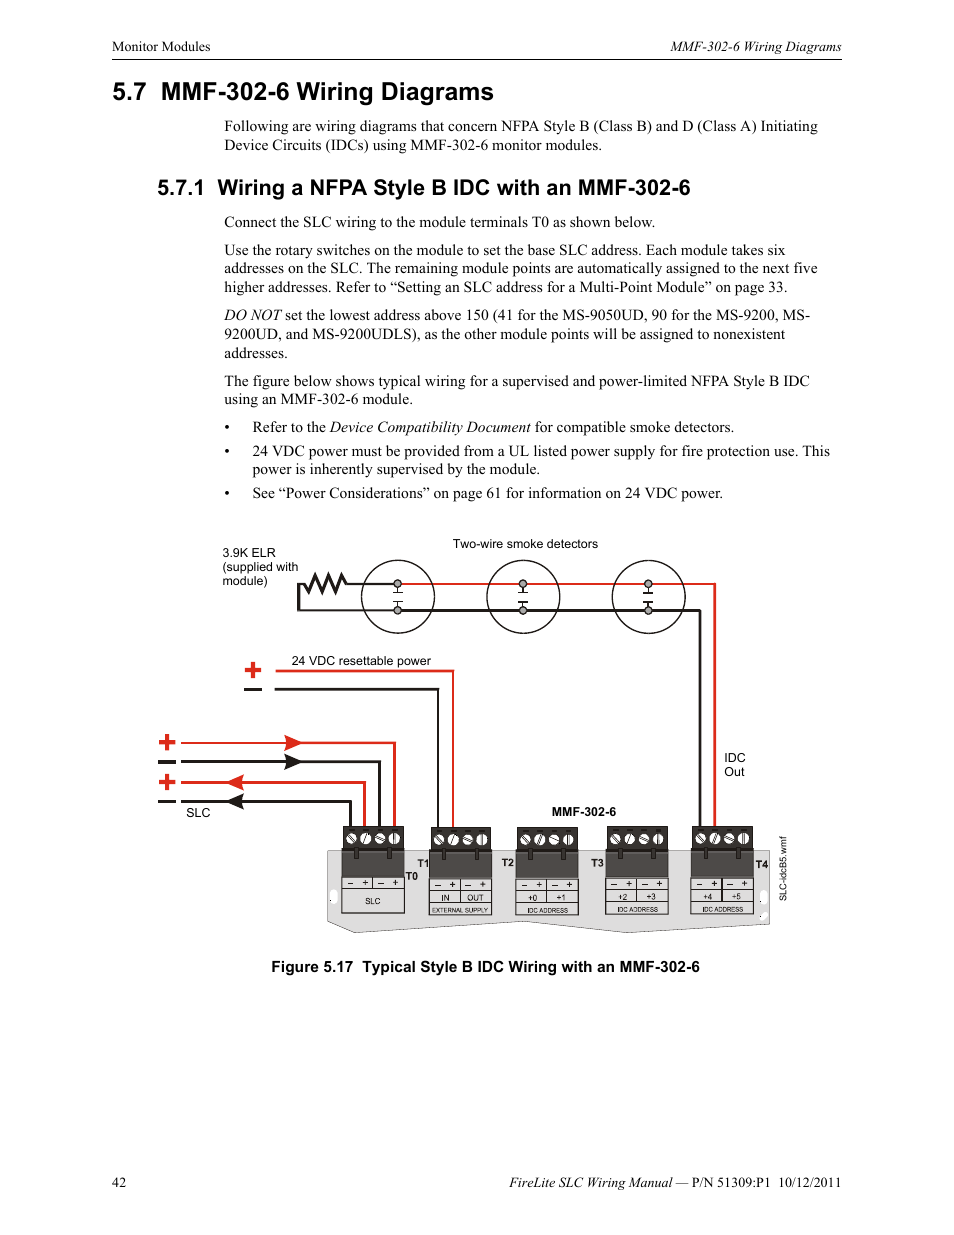 7 Mmf 302 6 Wiring Diagrams 1 A Nfpa Style B Idc With An Class Diagram Fire Lite Slc Intelligent Control Panel